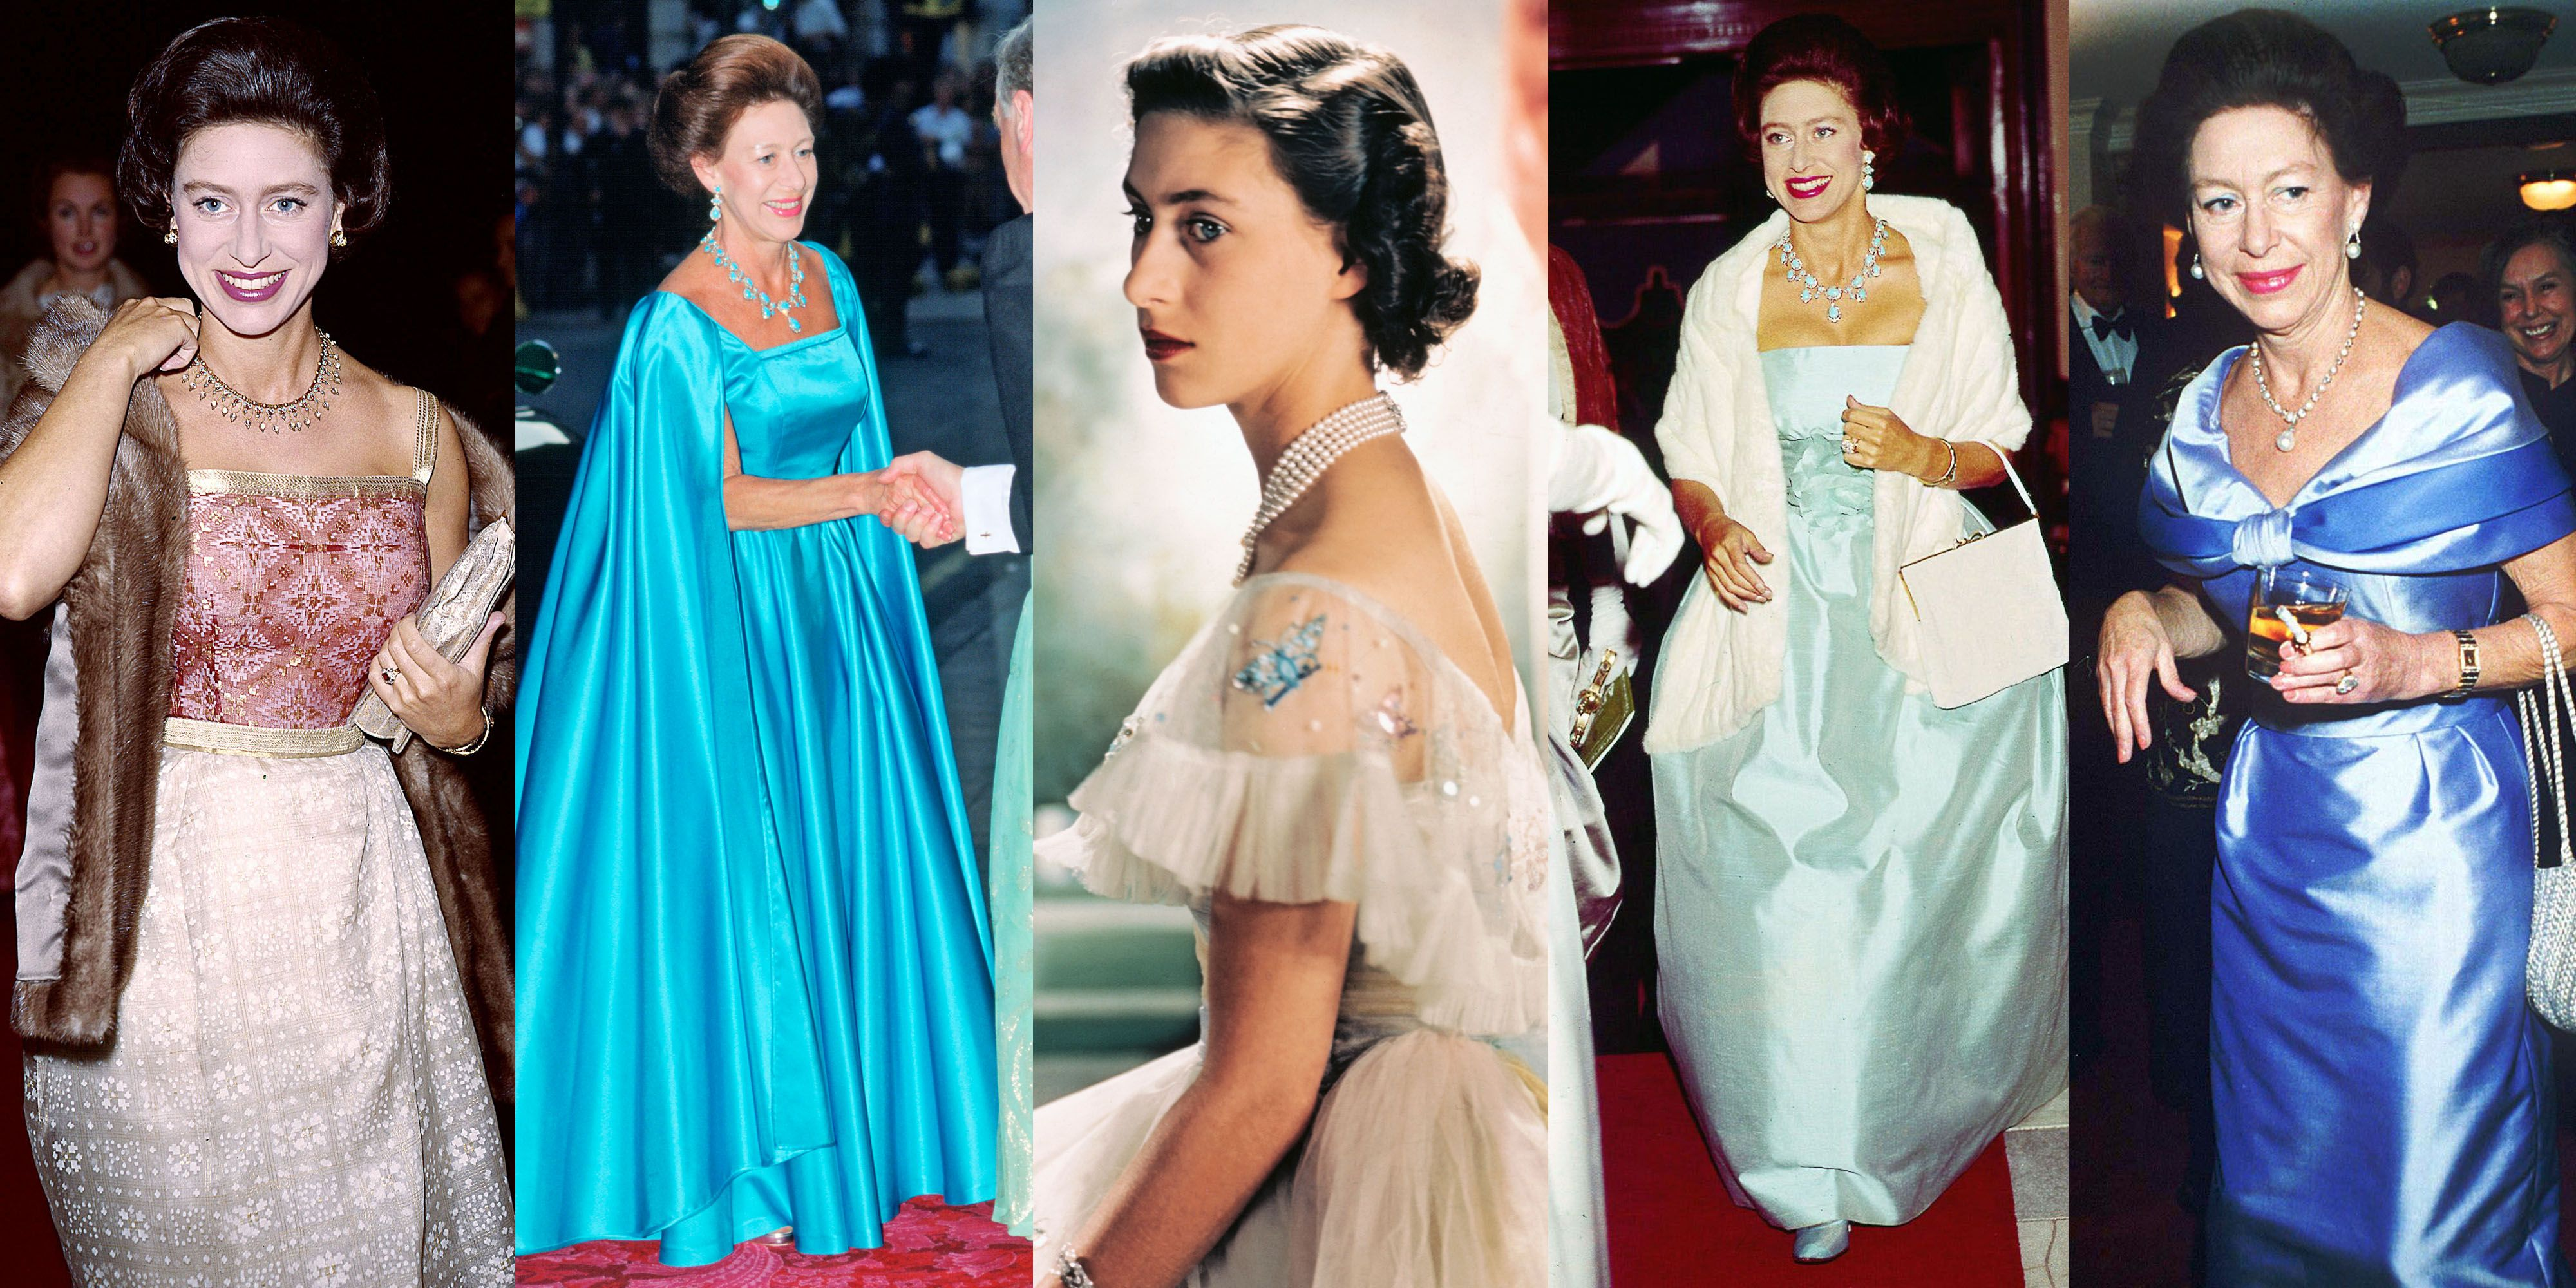 Princess Margaret's Most Iconic Fashion Moments